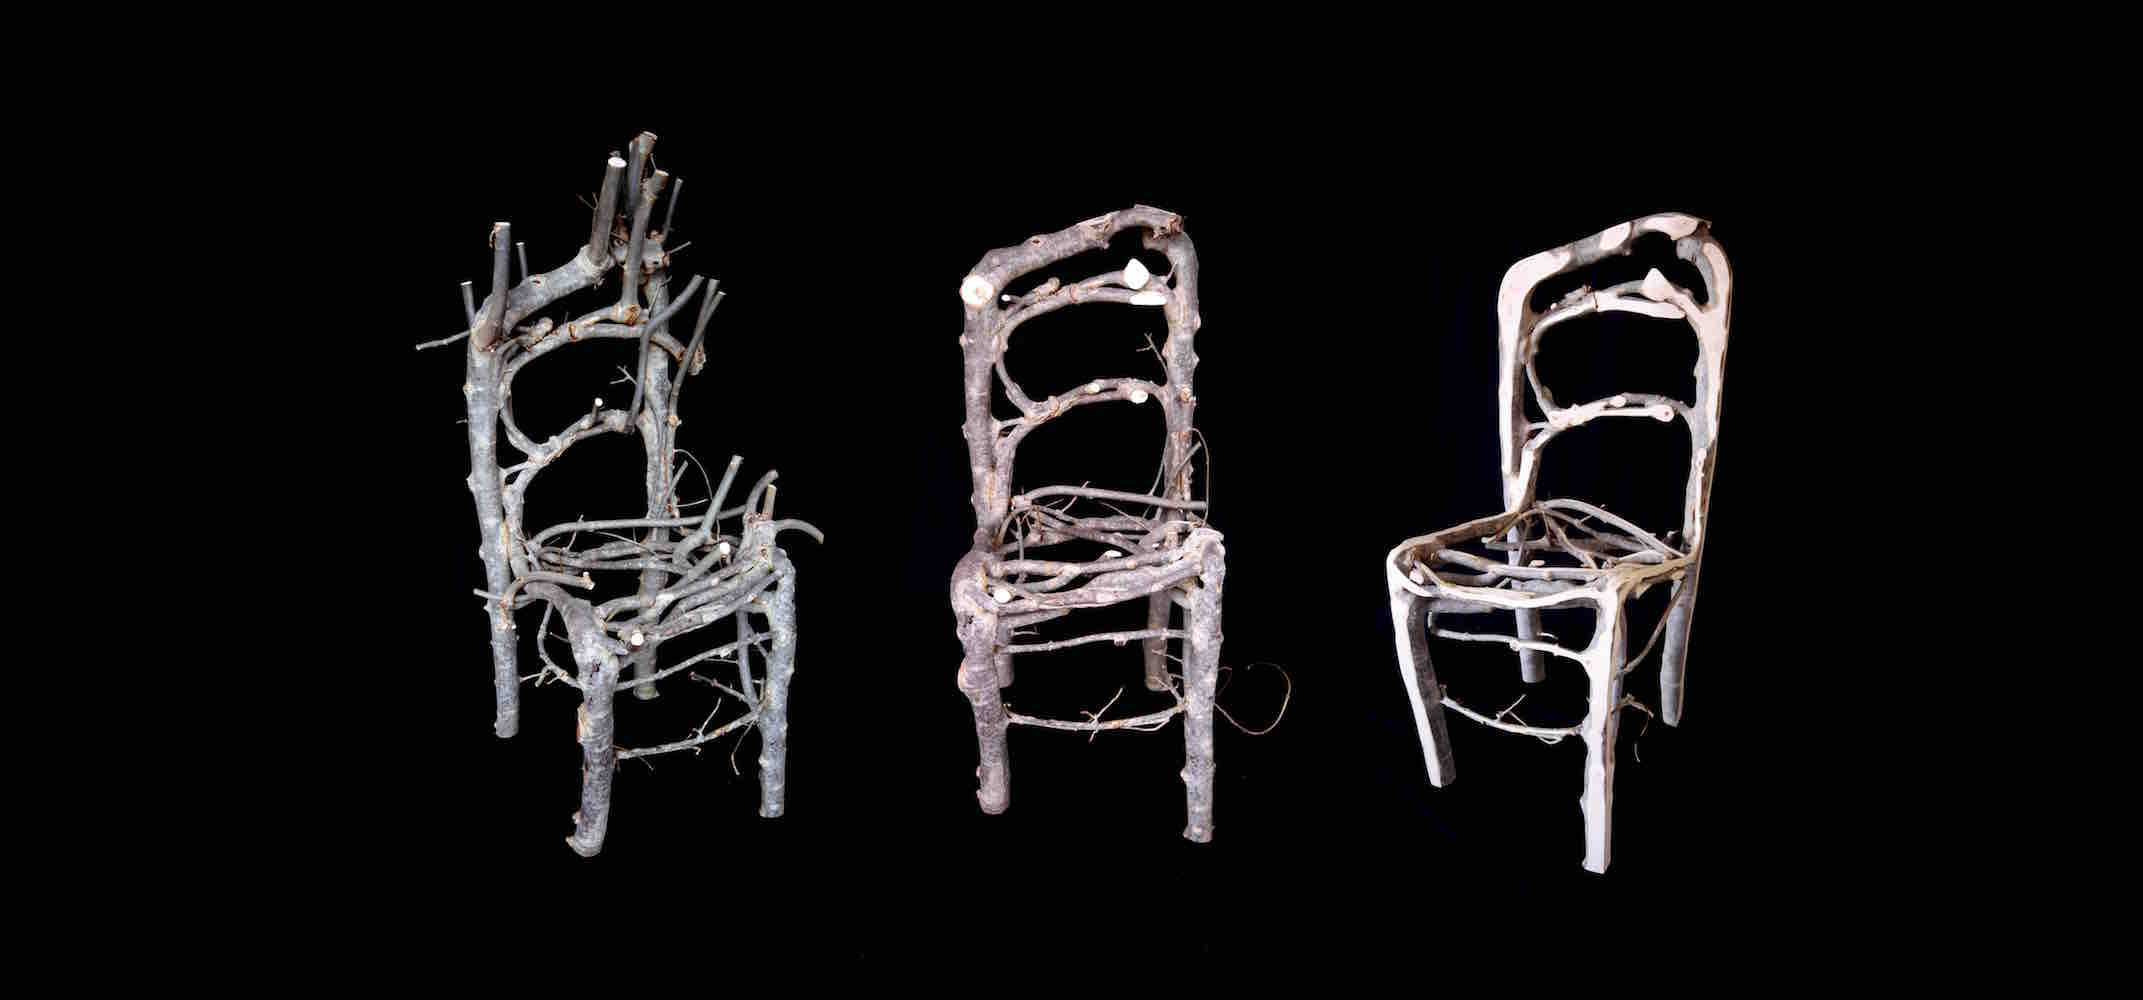 A triptych of the Wiltshire chair, from Raw to Finished